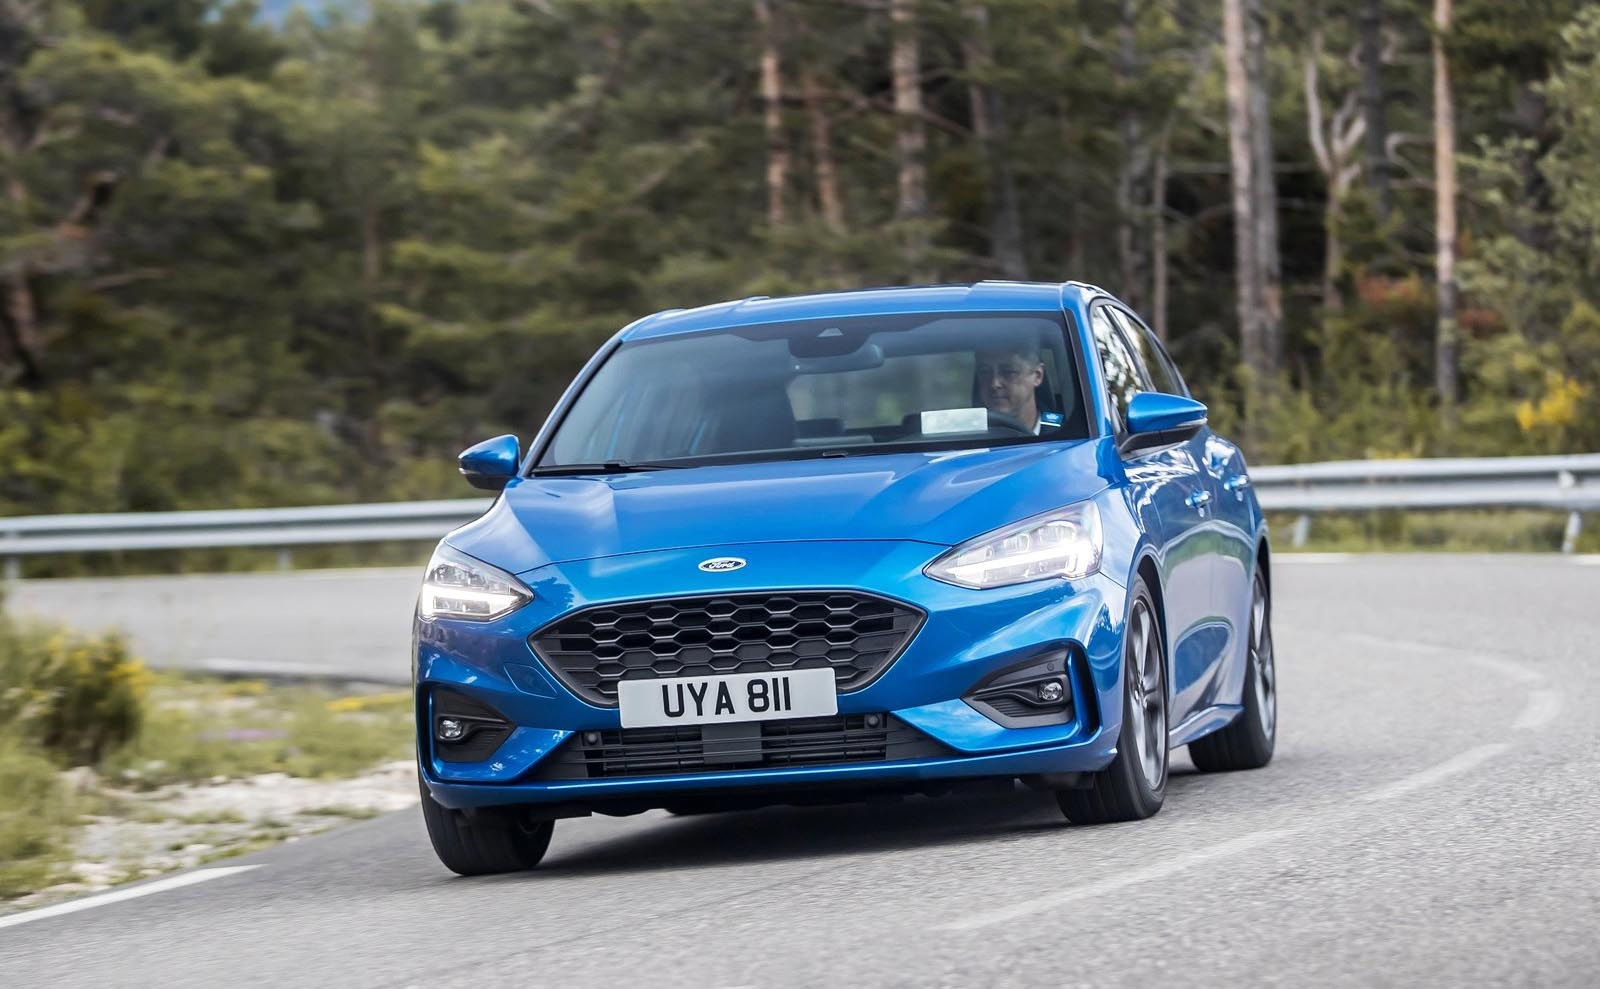 Photo of Με το νέο Ford Focus στη Νότια Γαλλία [first drive]